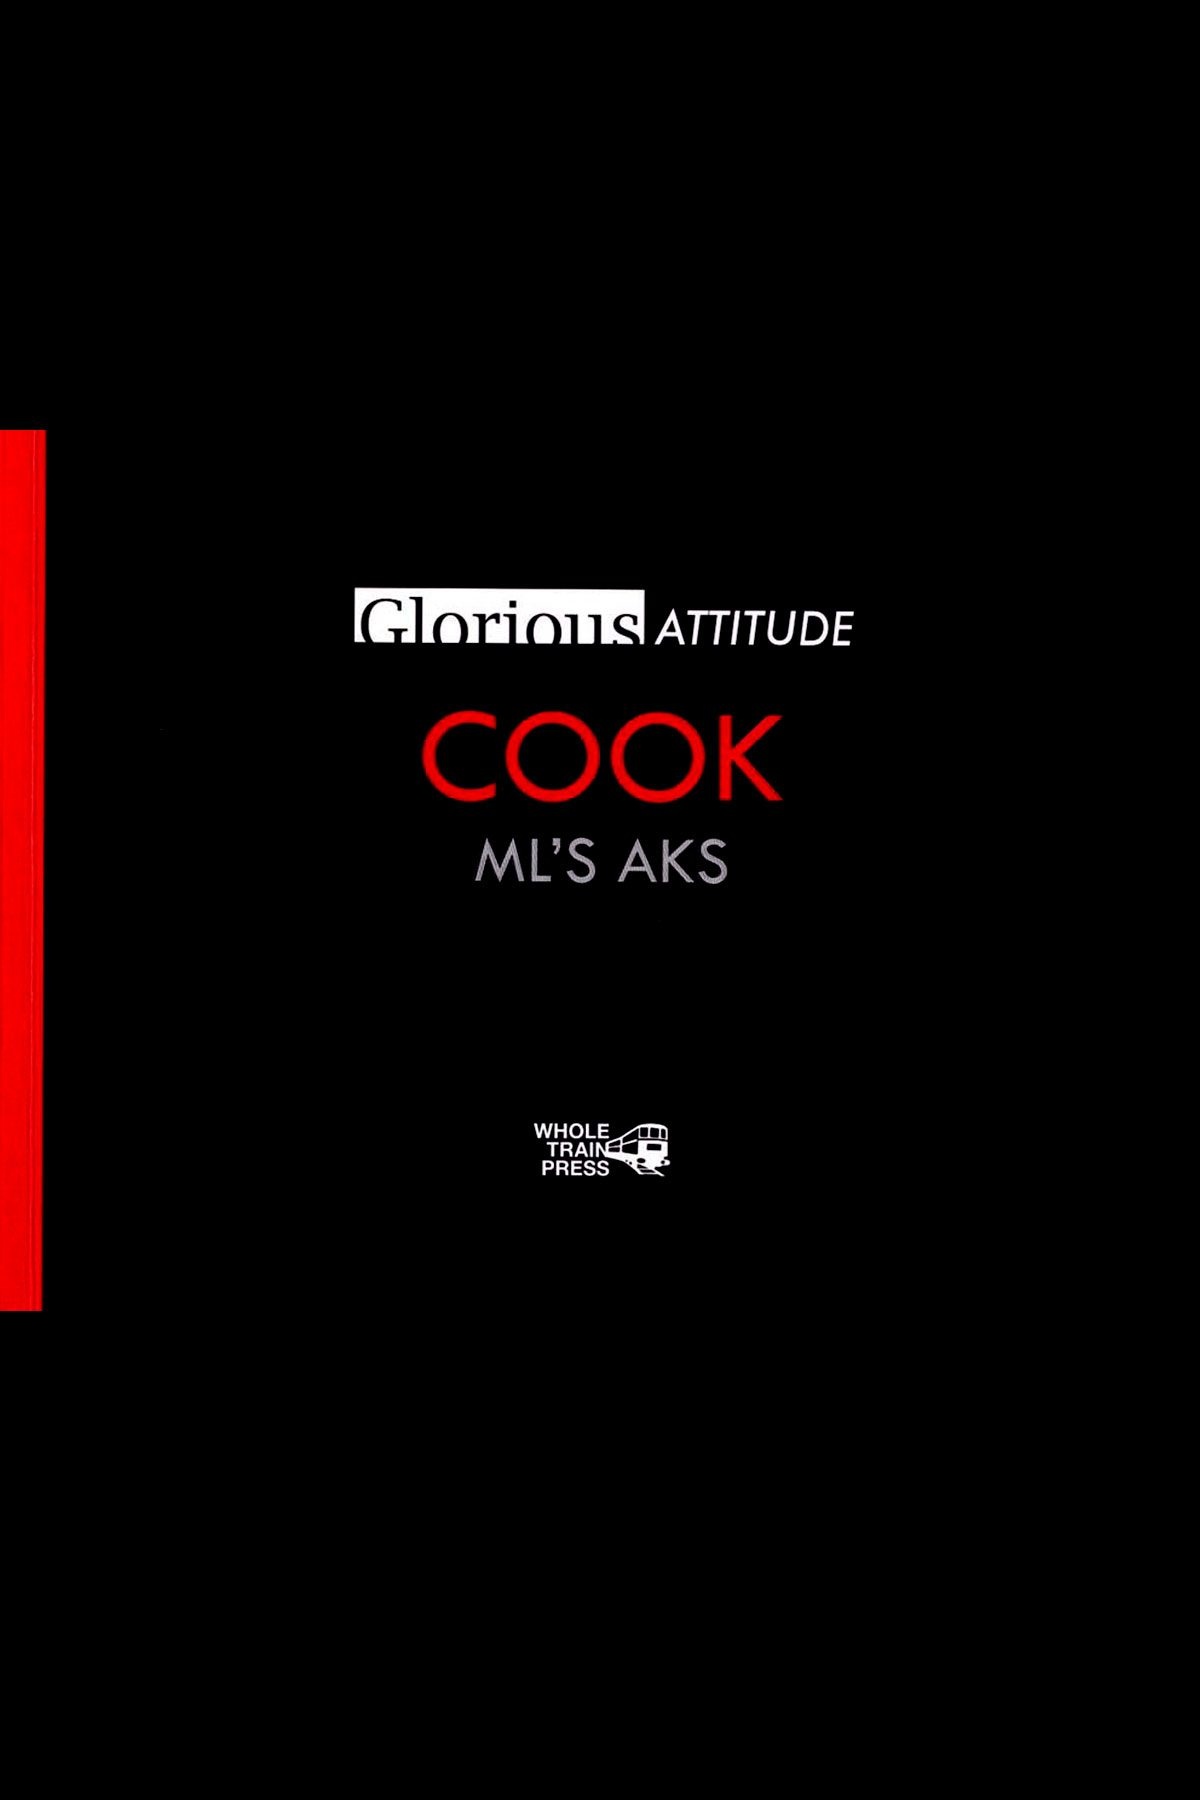 COOK ML'S AKS - Glorious Attitude di Wholetrain Press